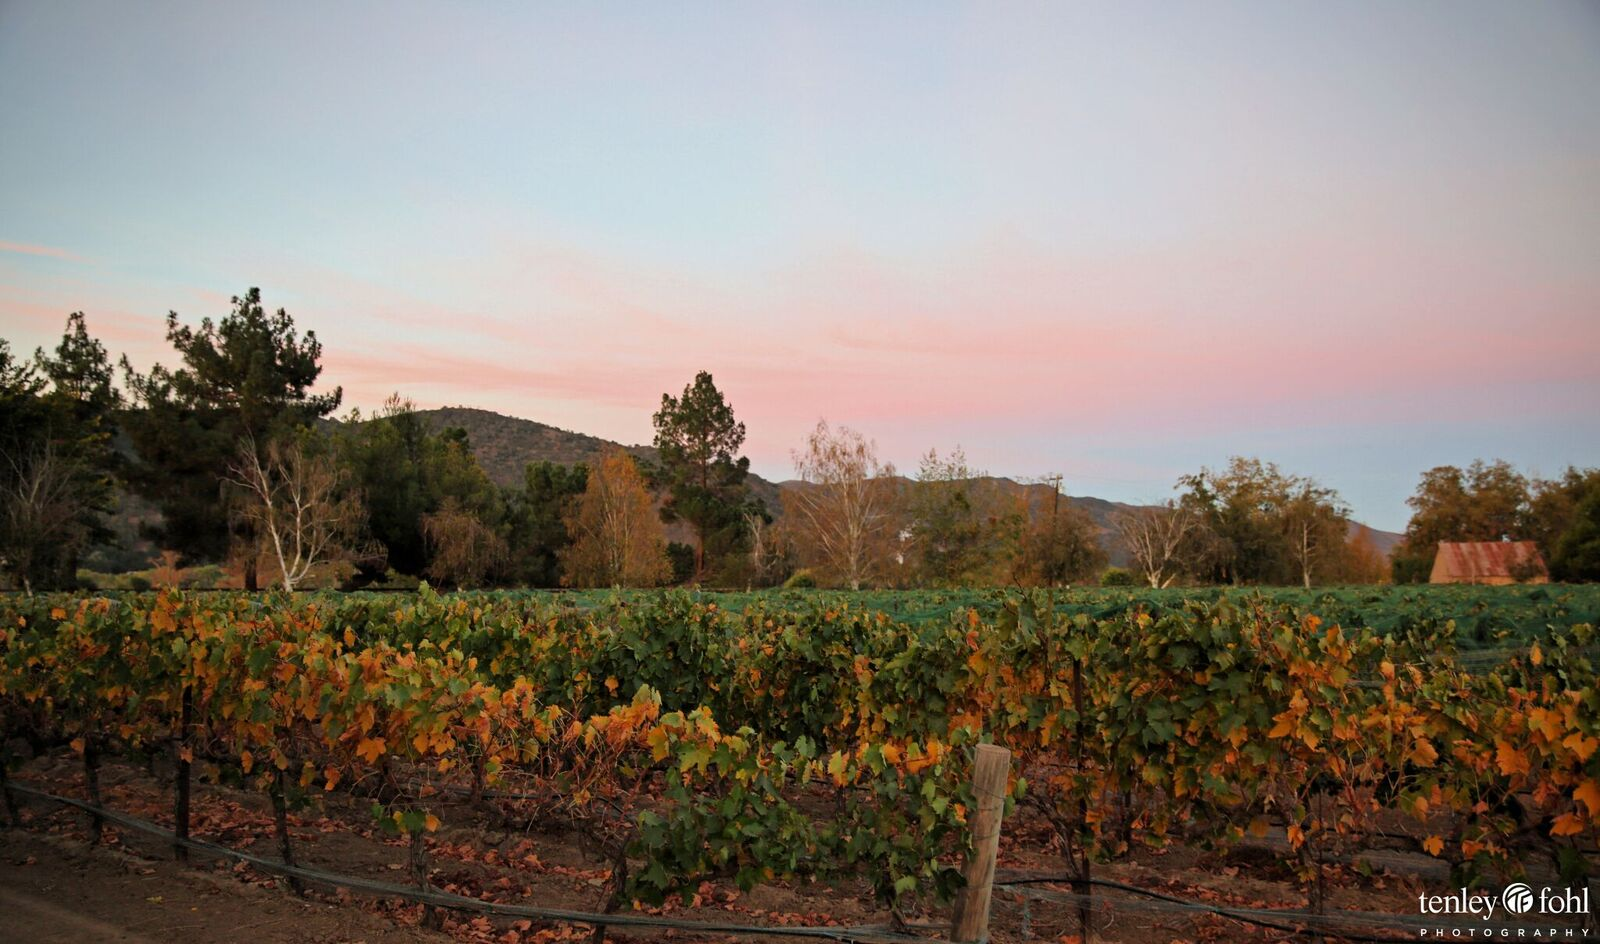 A boutique winery - 13 acres planted